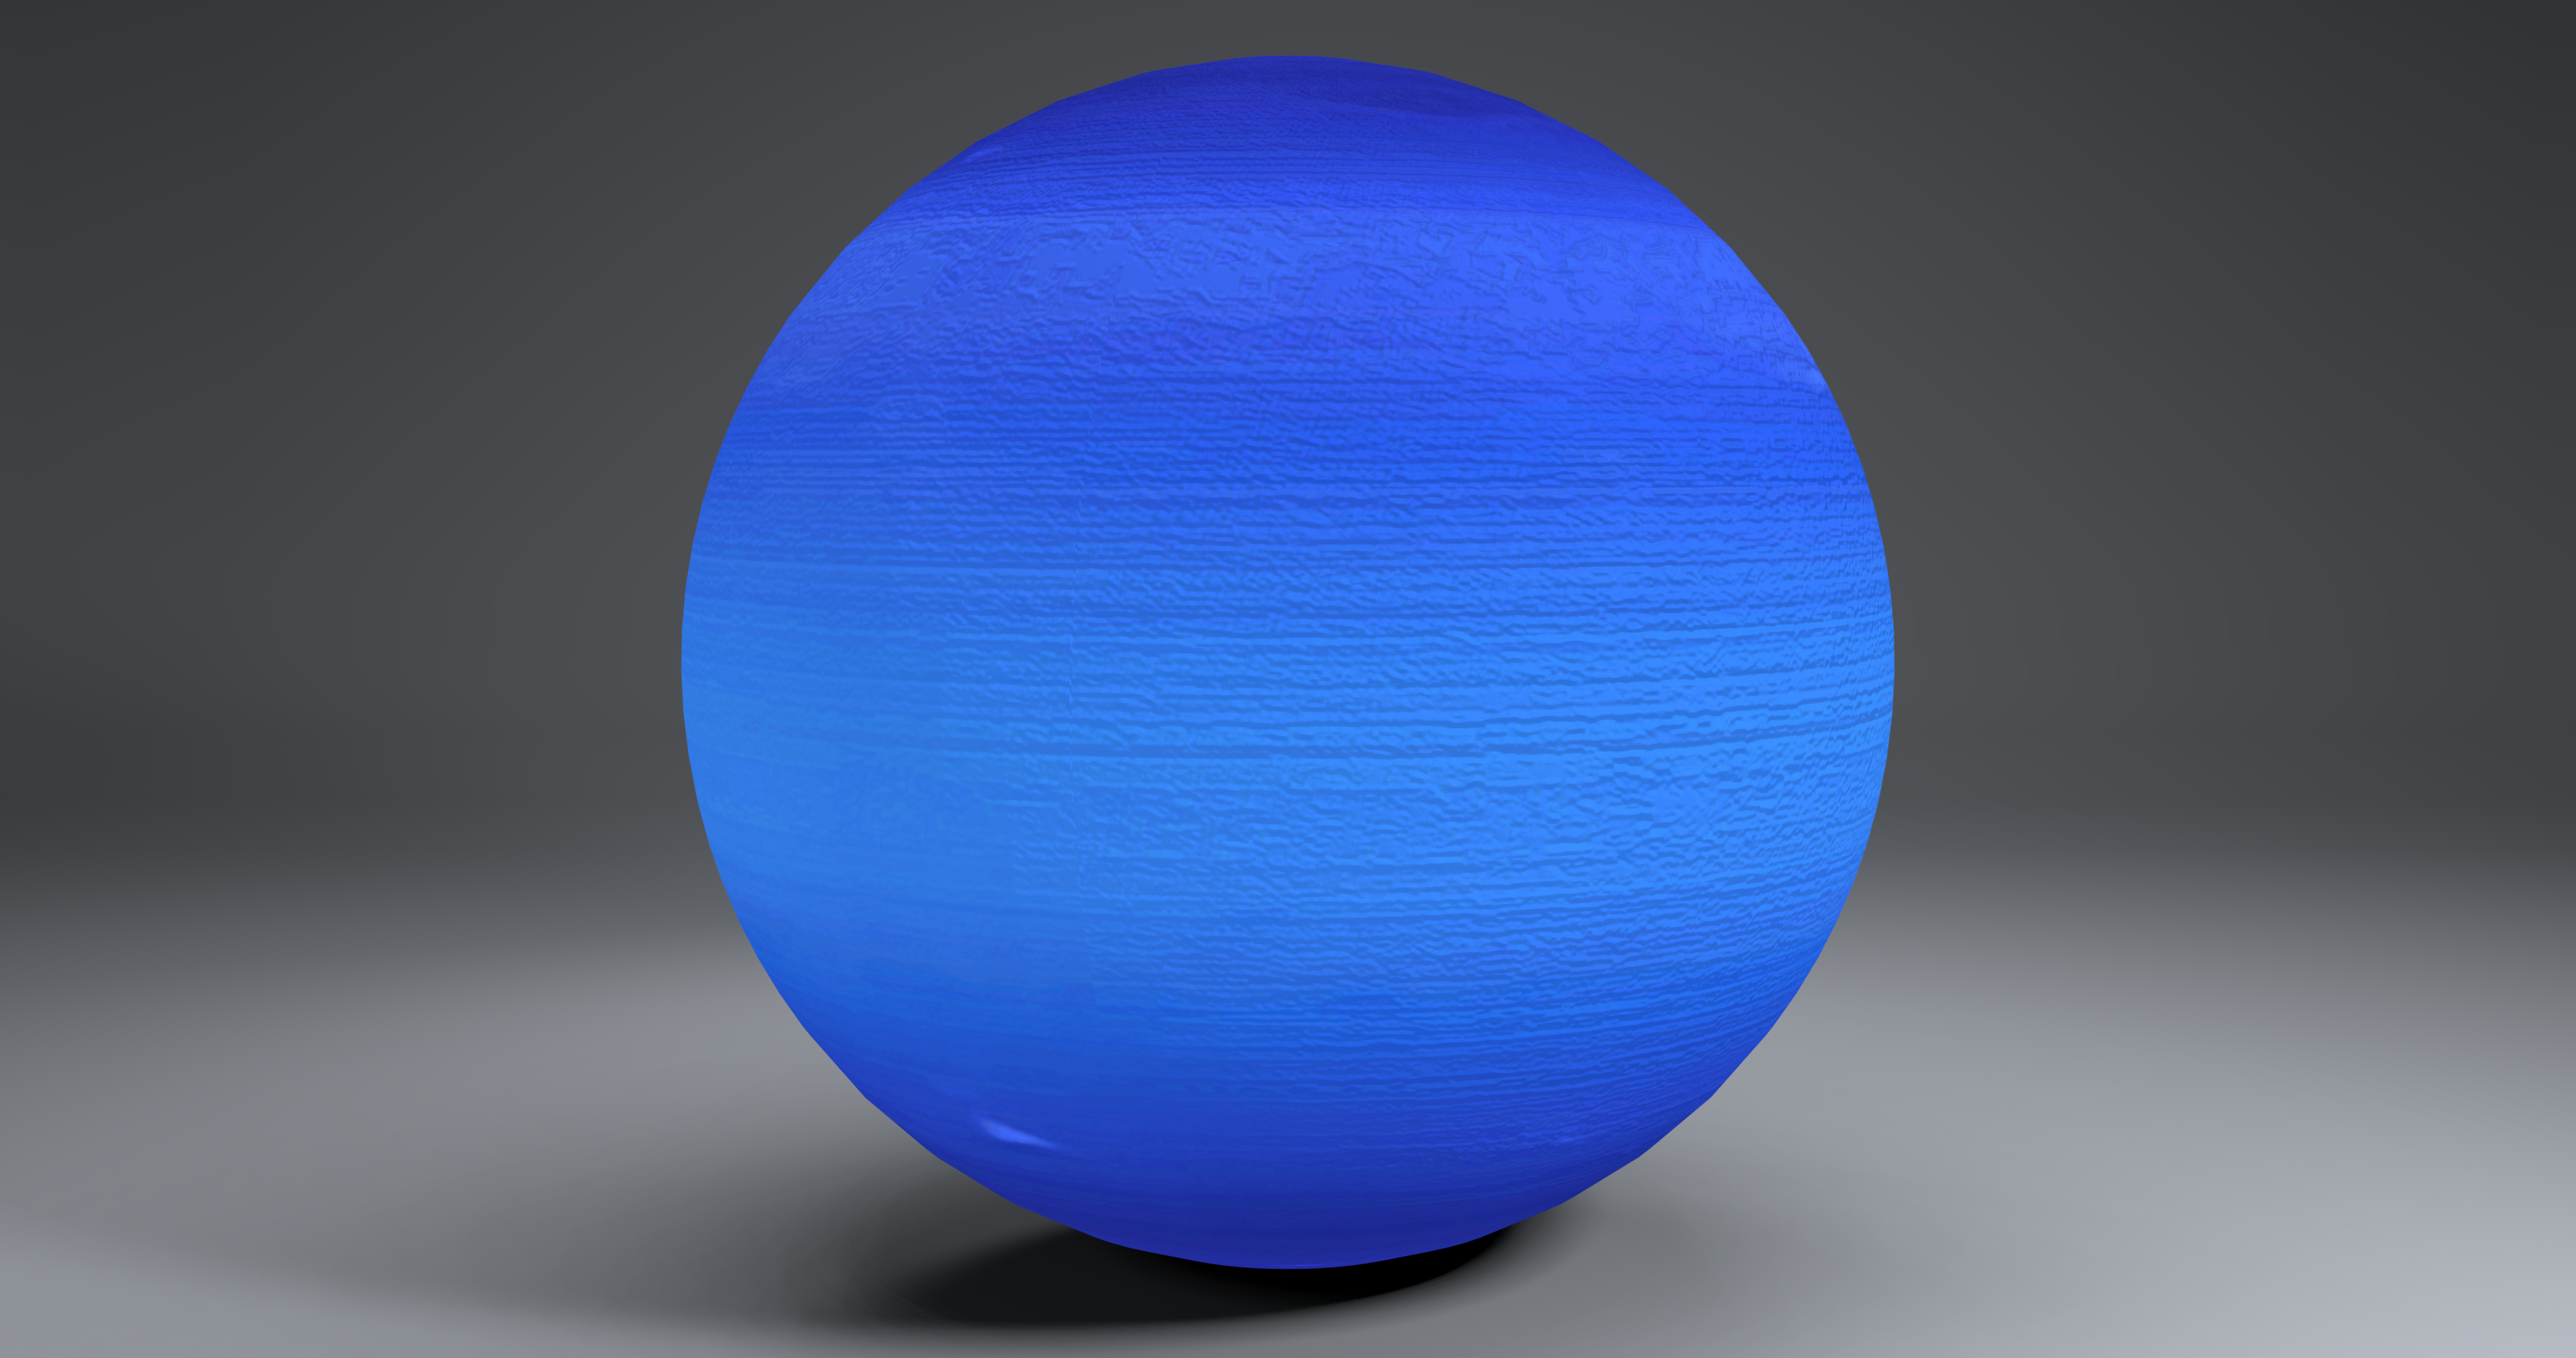 neptune 2k globe 3d model 3ds fbx blend dae obj 269174